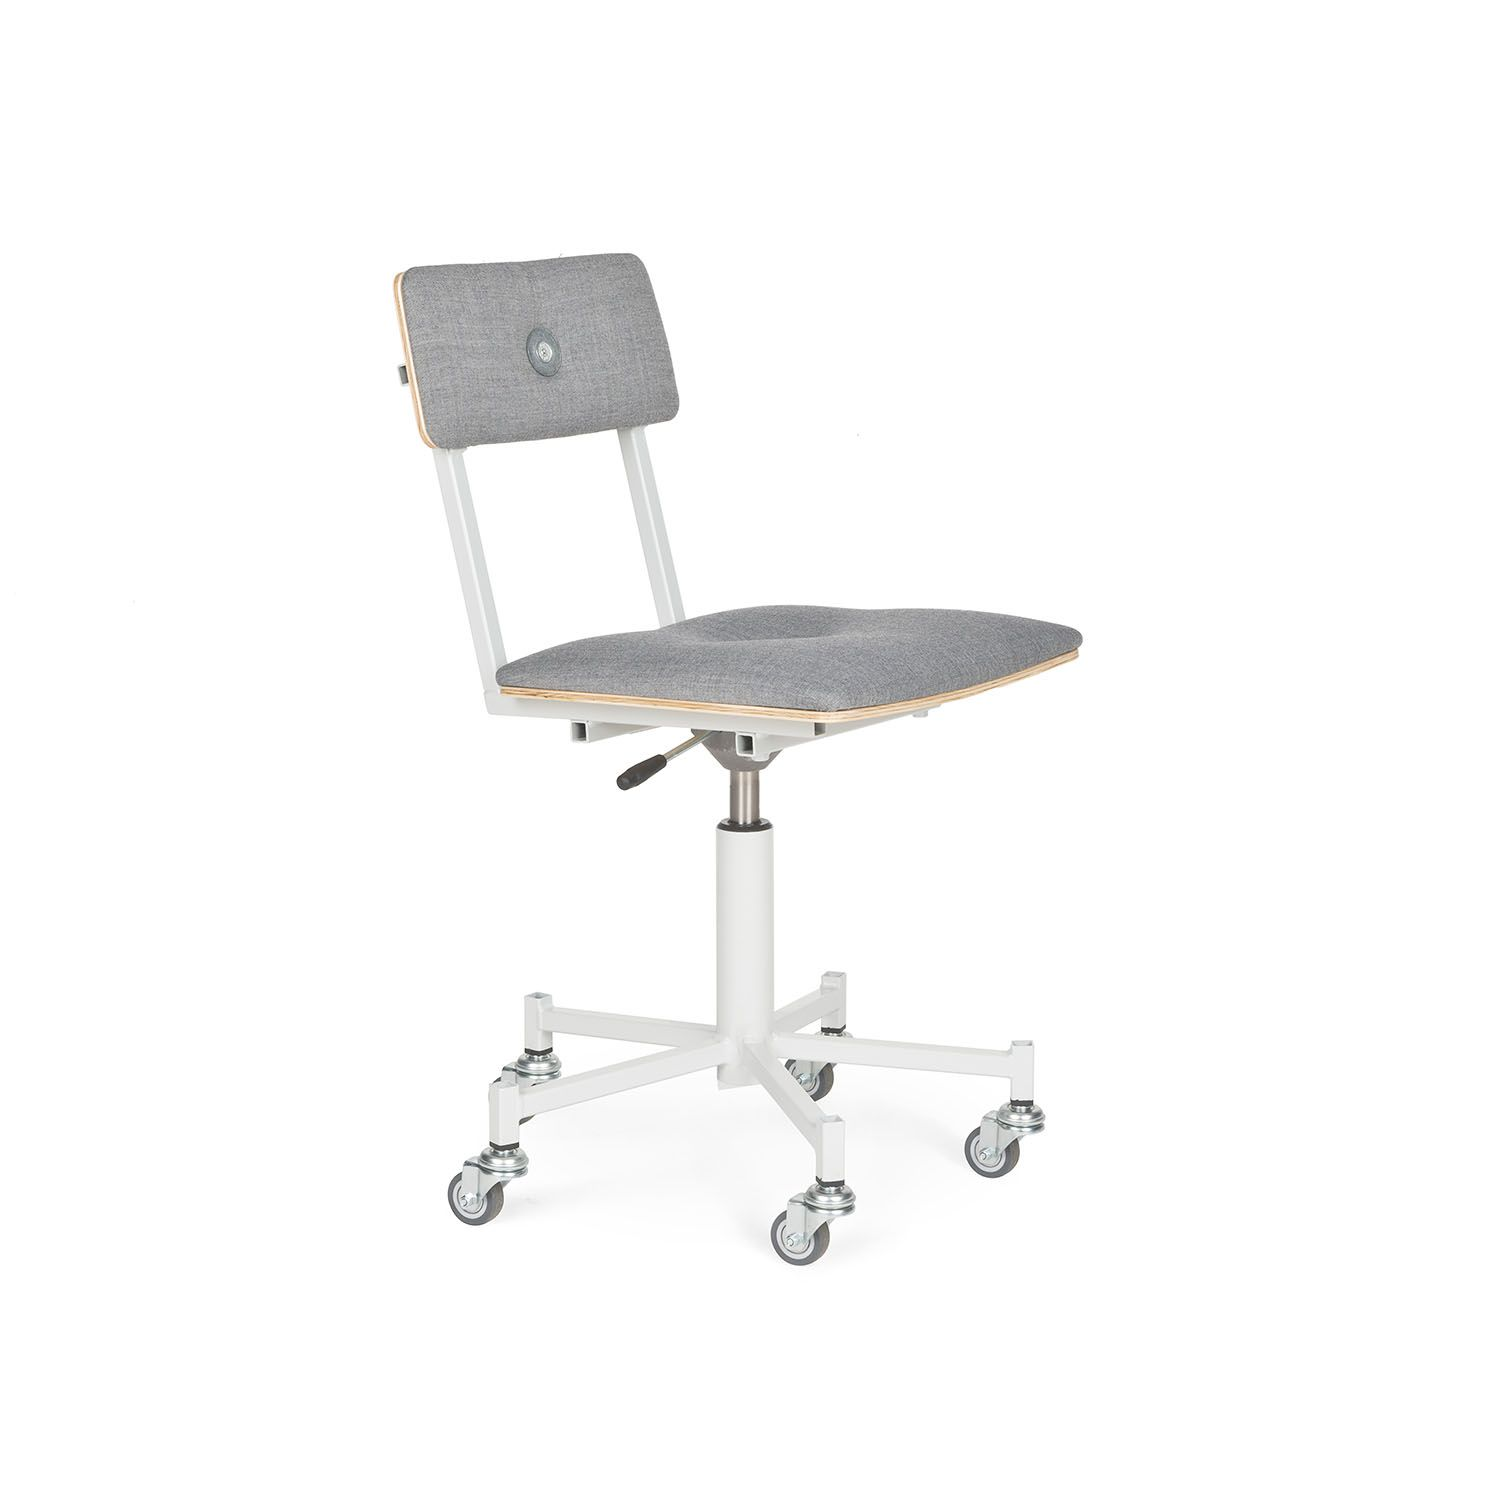 phm2012 office chair